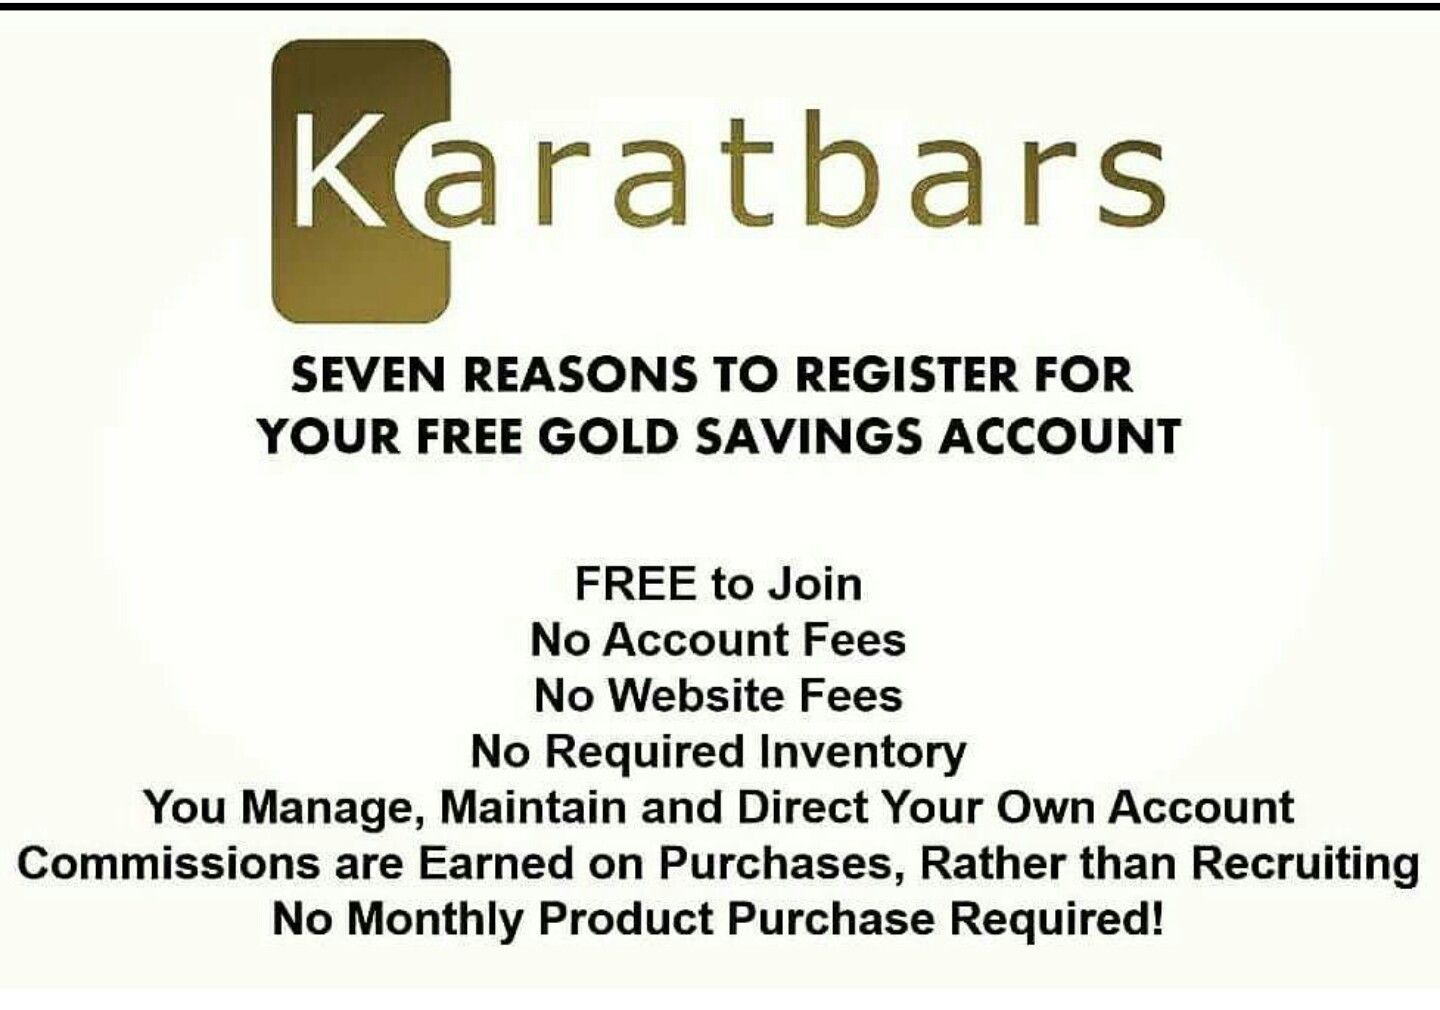 karatbars international gold opportunity - HD 1440×1010